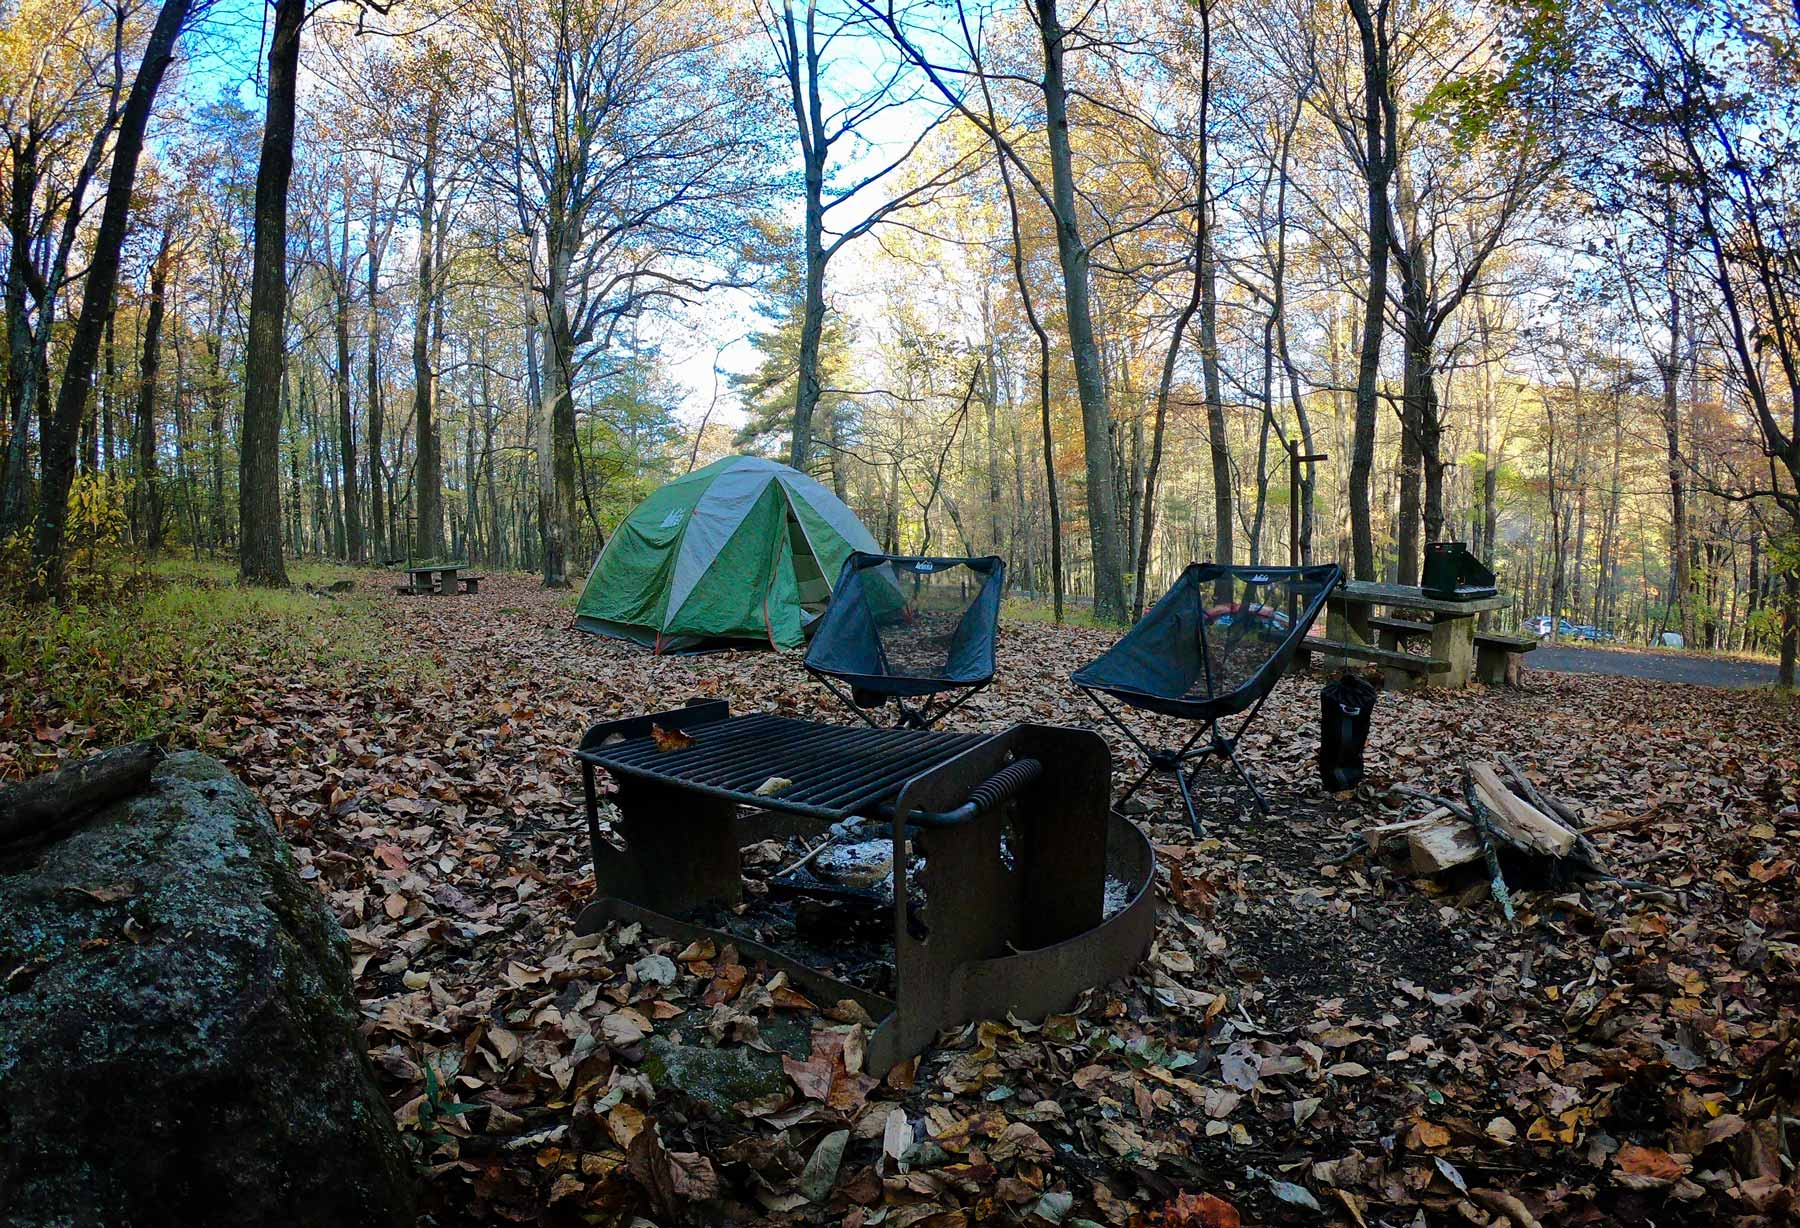 Campsite at Peaks of Otter Campground on Blue Ridge Parkway, Virginia